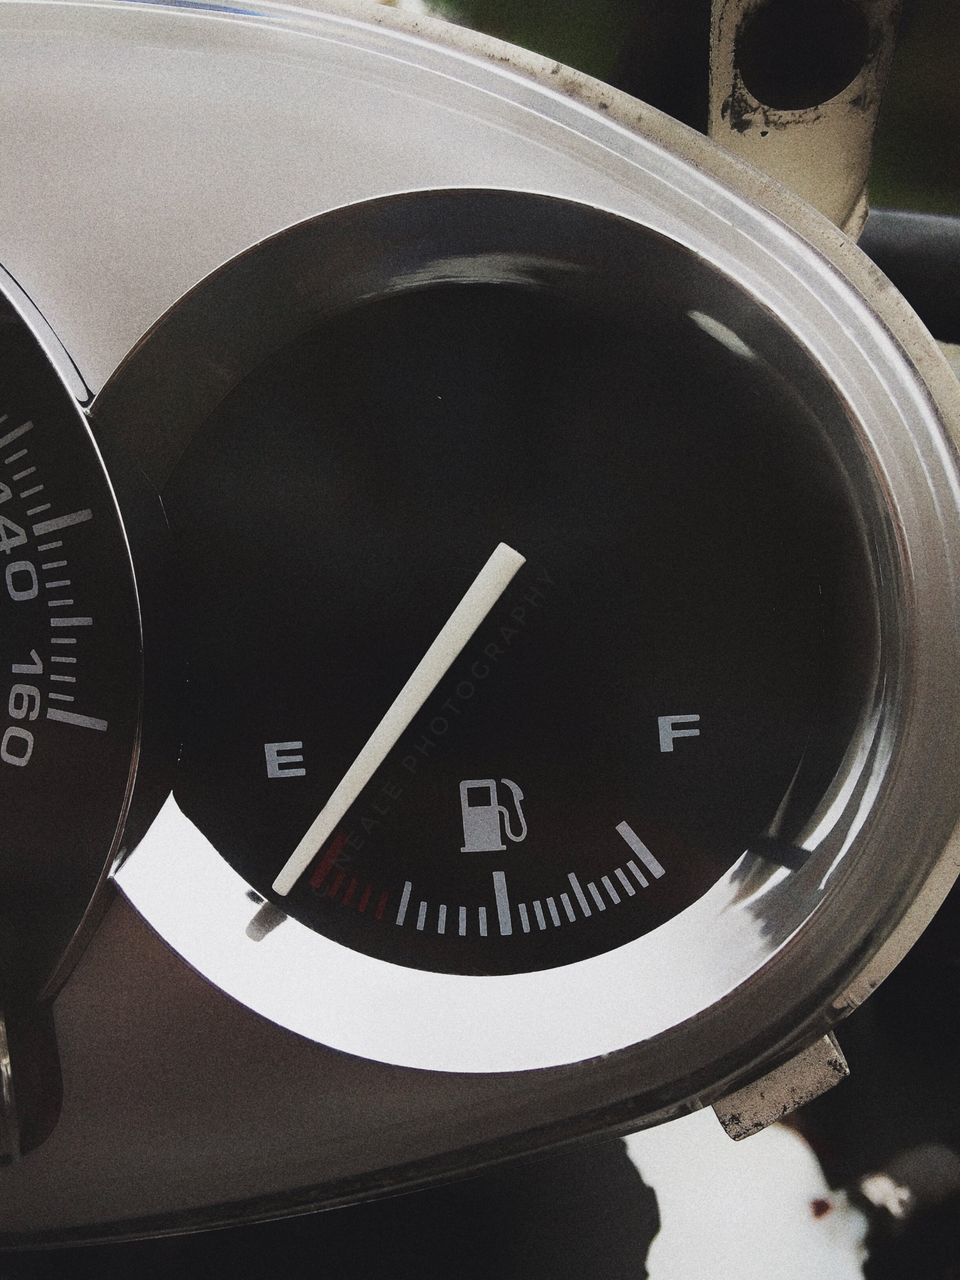 number, text, no people, time, close-up, transportation, speedometer, indoors, clock, minute hand, day, gauge, clock face